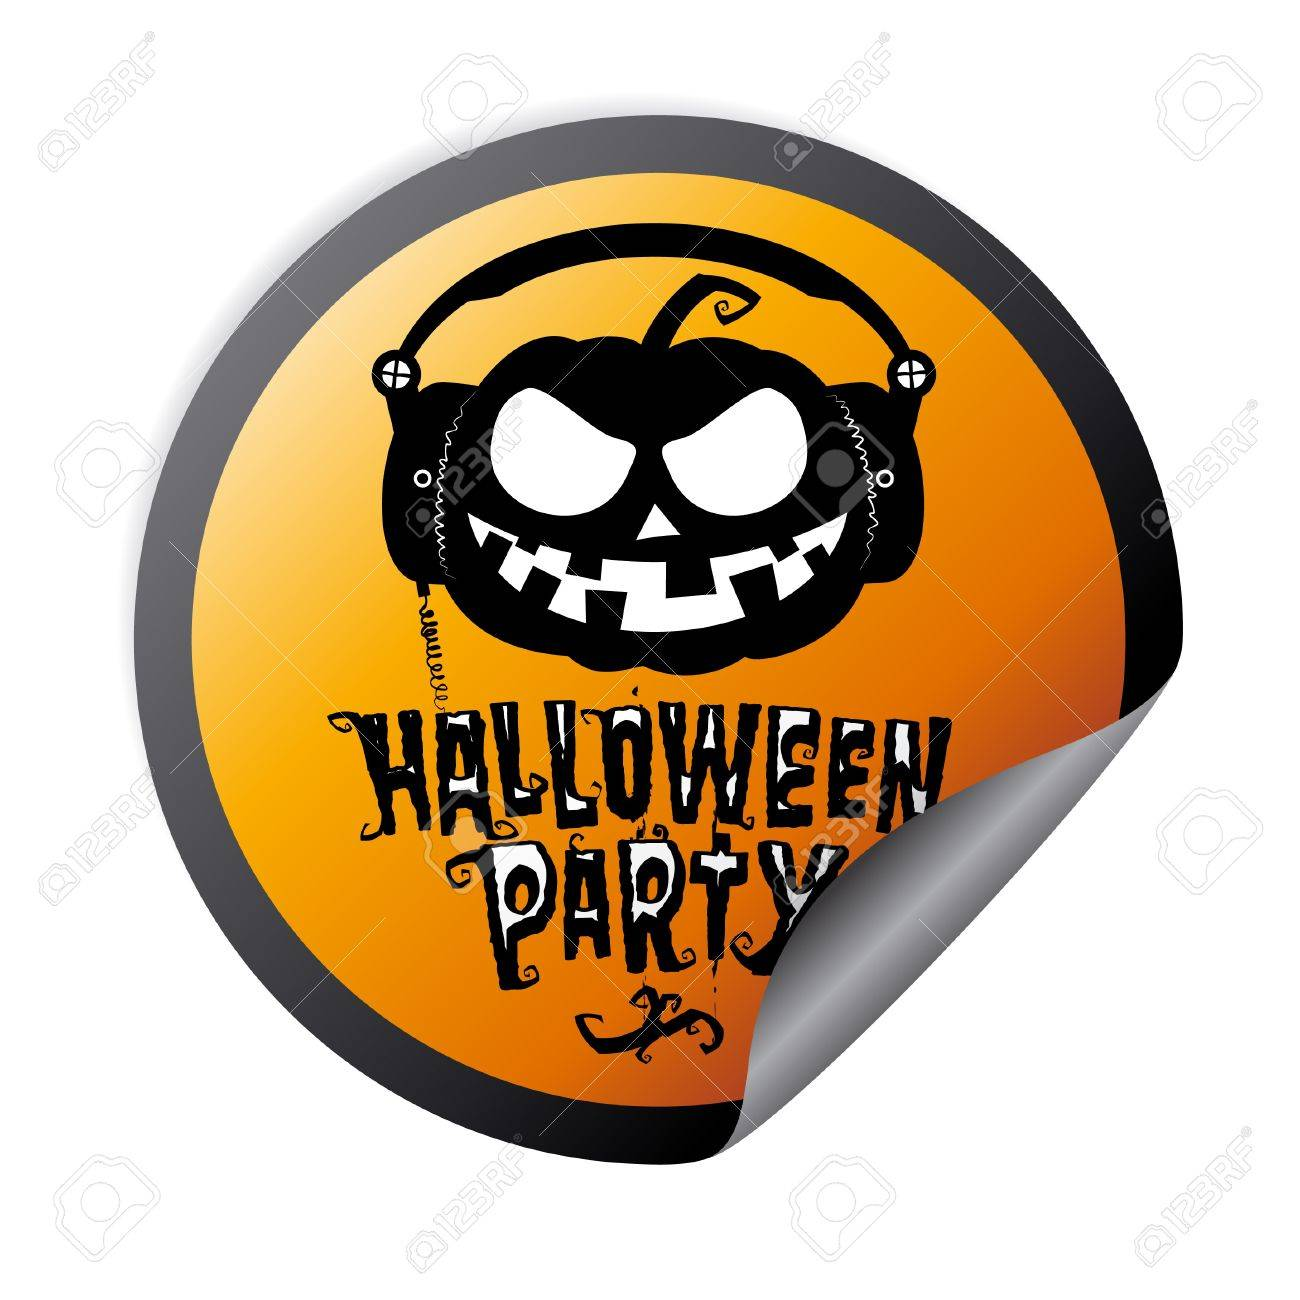 Halloween Party Sticker With Pumpkin Wear Headphones Royalty Free ...